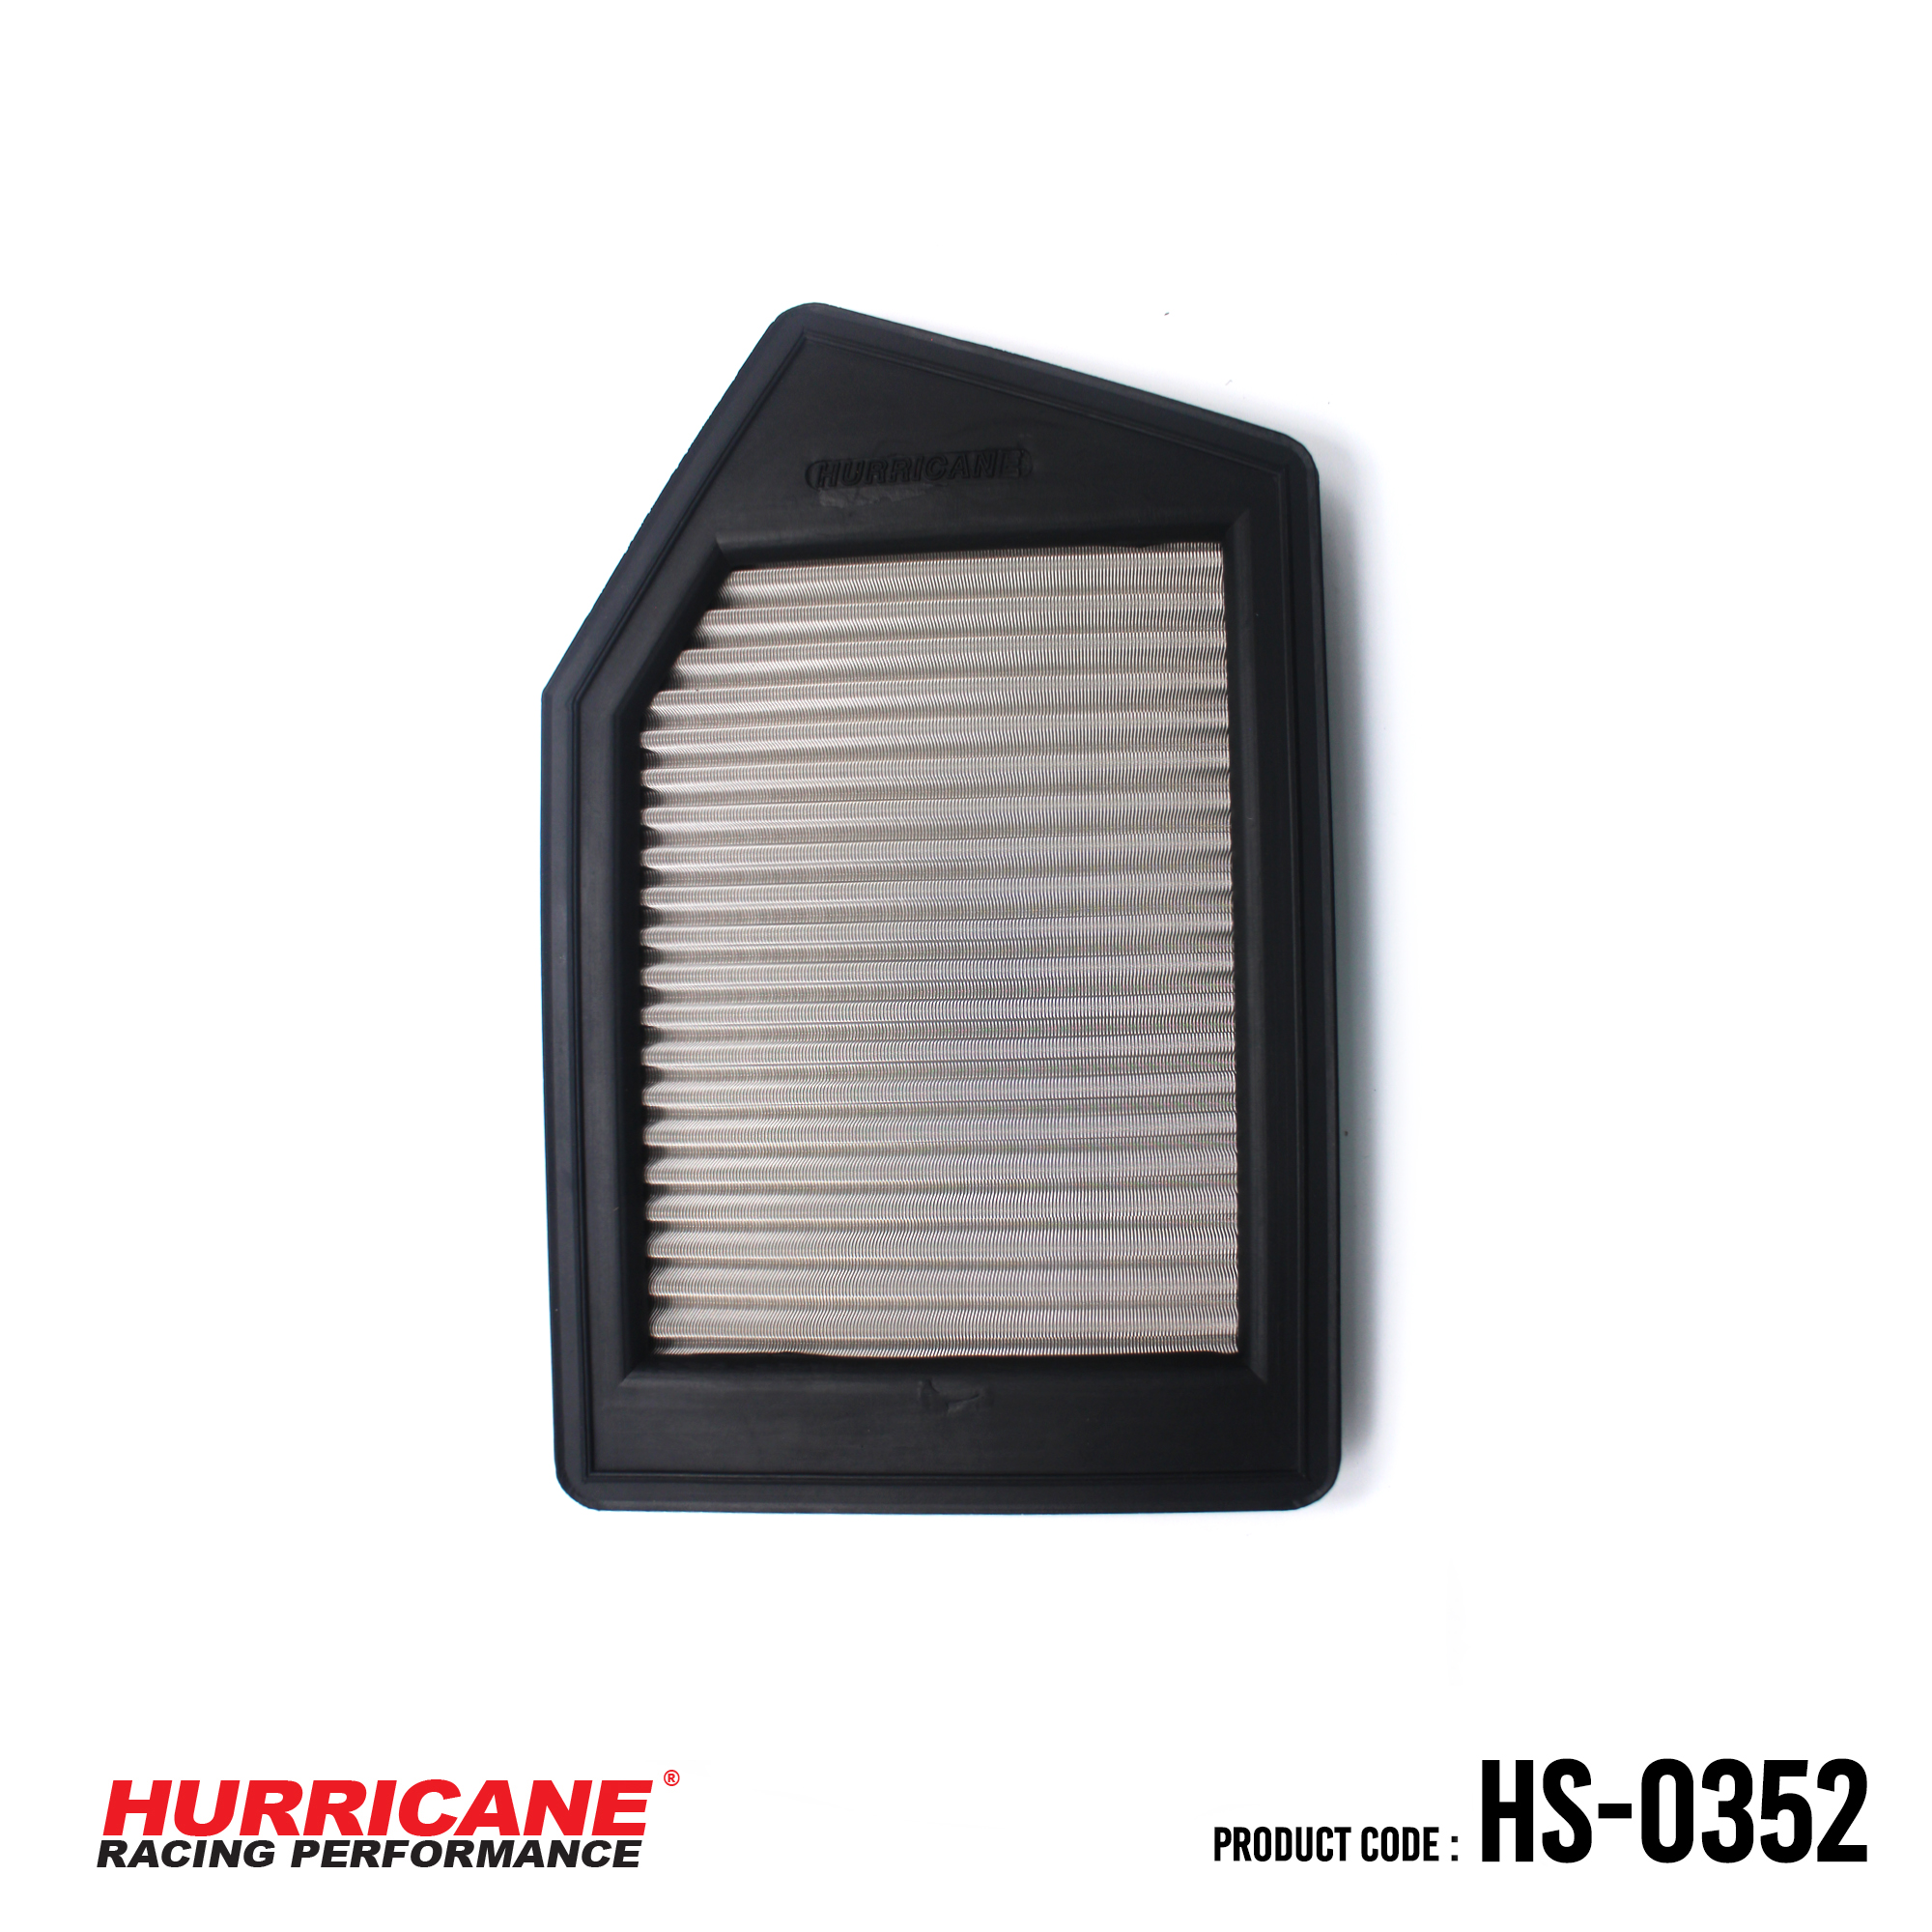 Acura TLX HS-0352 Hurricane Stainless Steel Air Filter